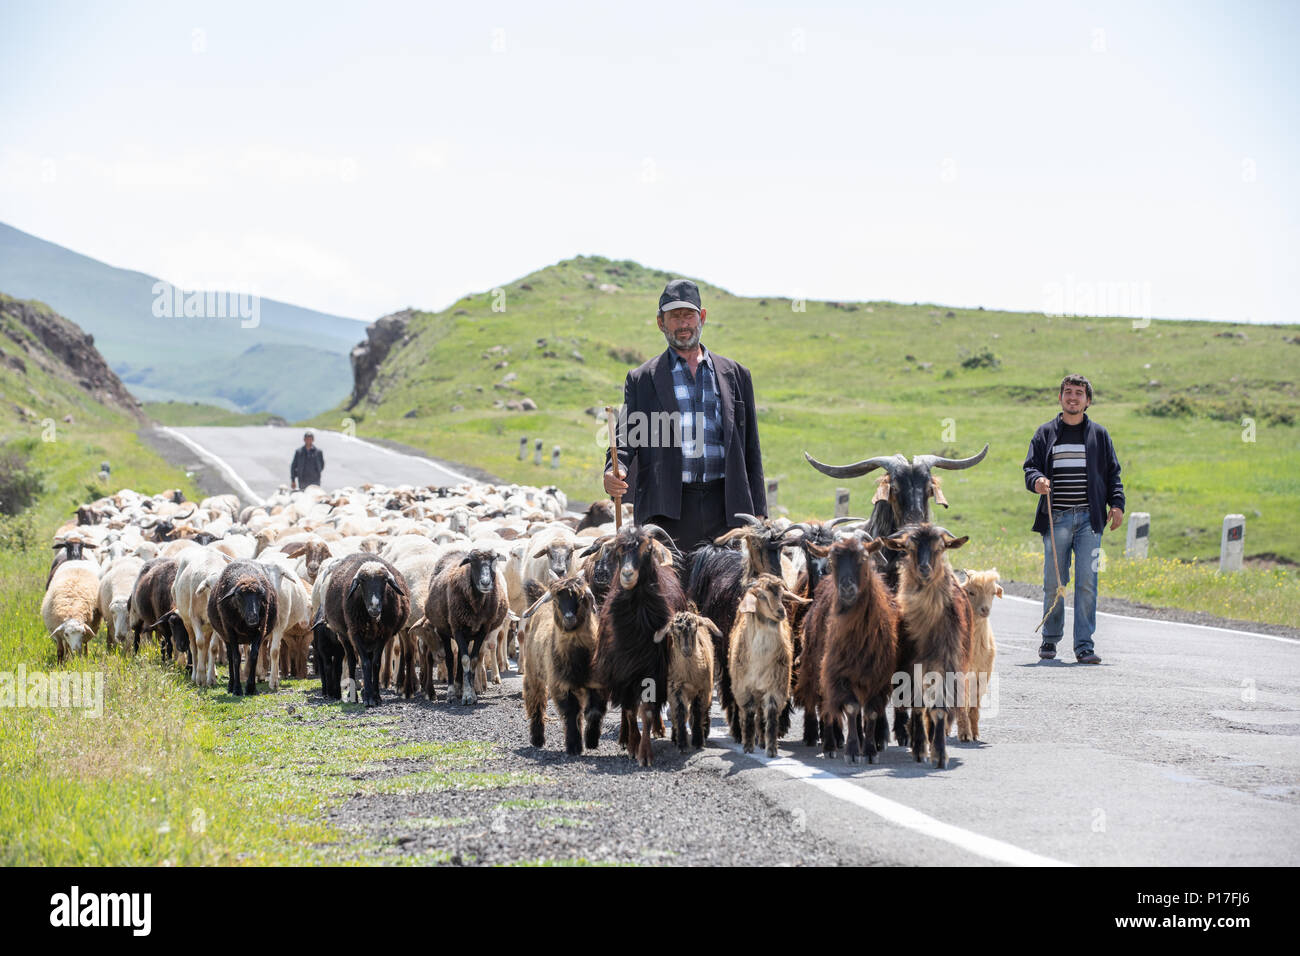 Tatev, Armenia - Jun 2, 2018: Armenian herders walking on the road with their herd of sheep and goats on a sunny summer day. Stock Photo